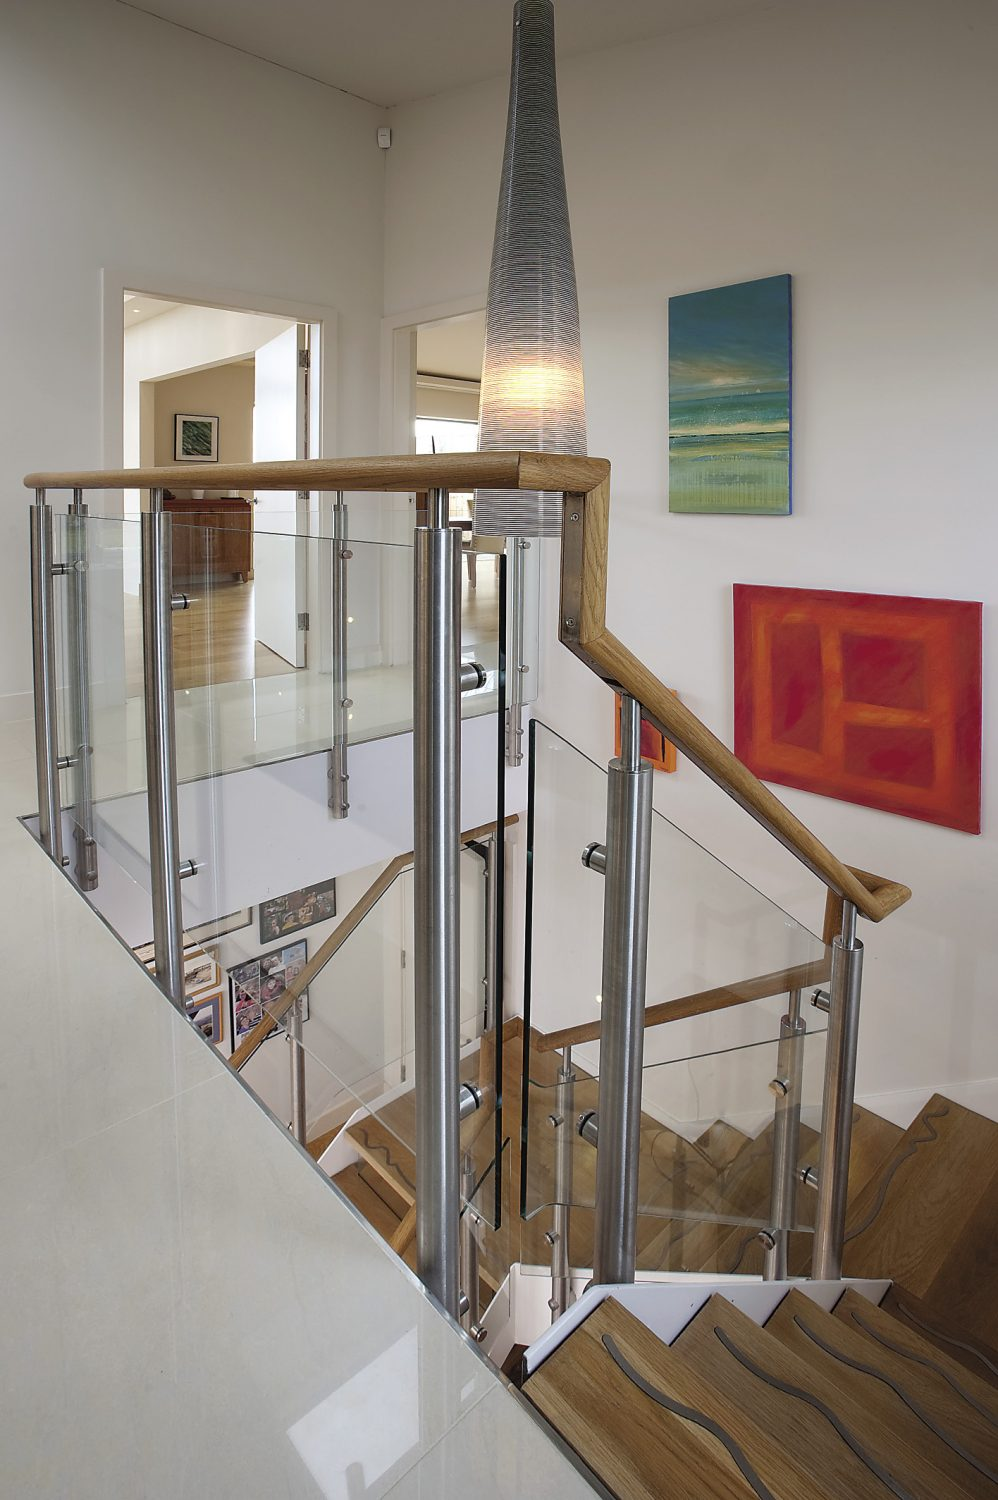 The steel and glass staircase leads down to a large open space that sometimes serves as a table tennis court